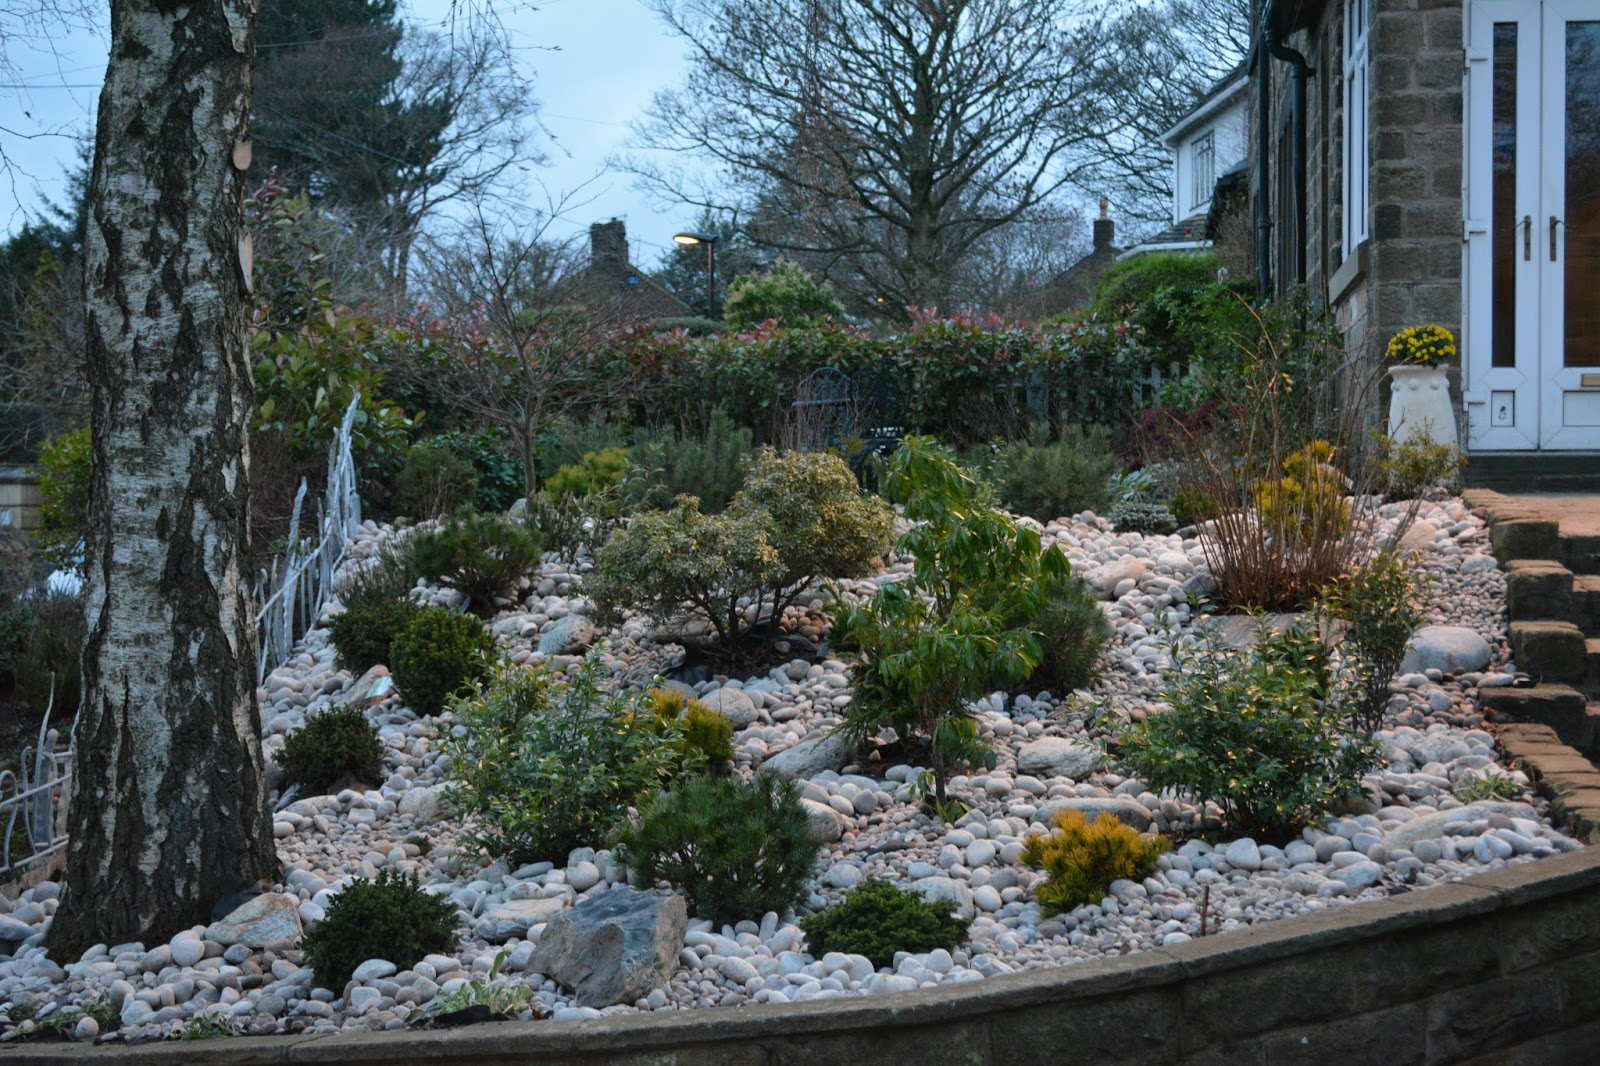 A Garden Design Project In Greenfield, Oldham, UK